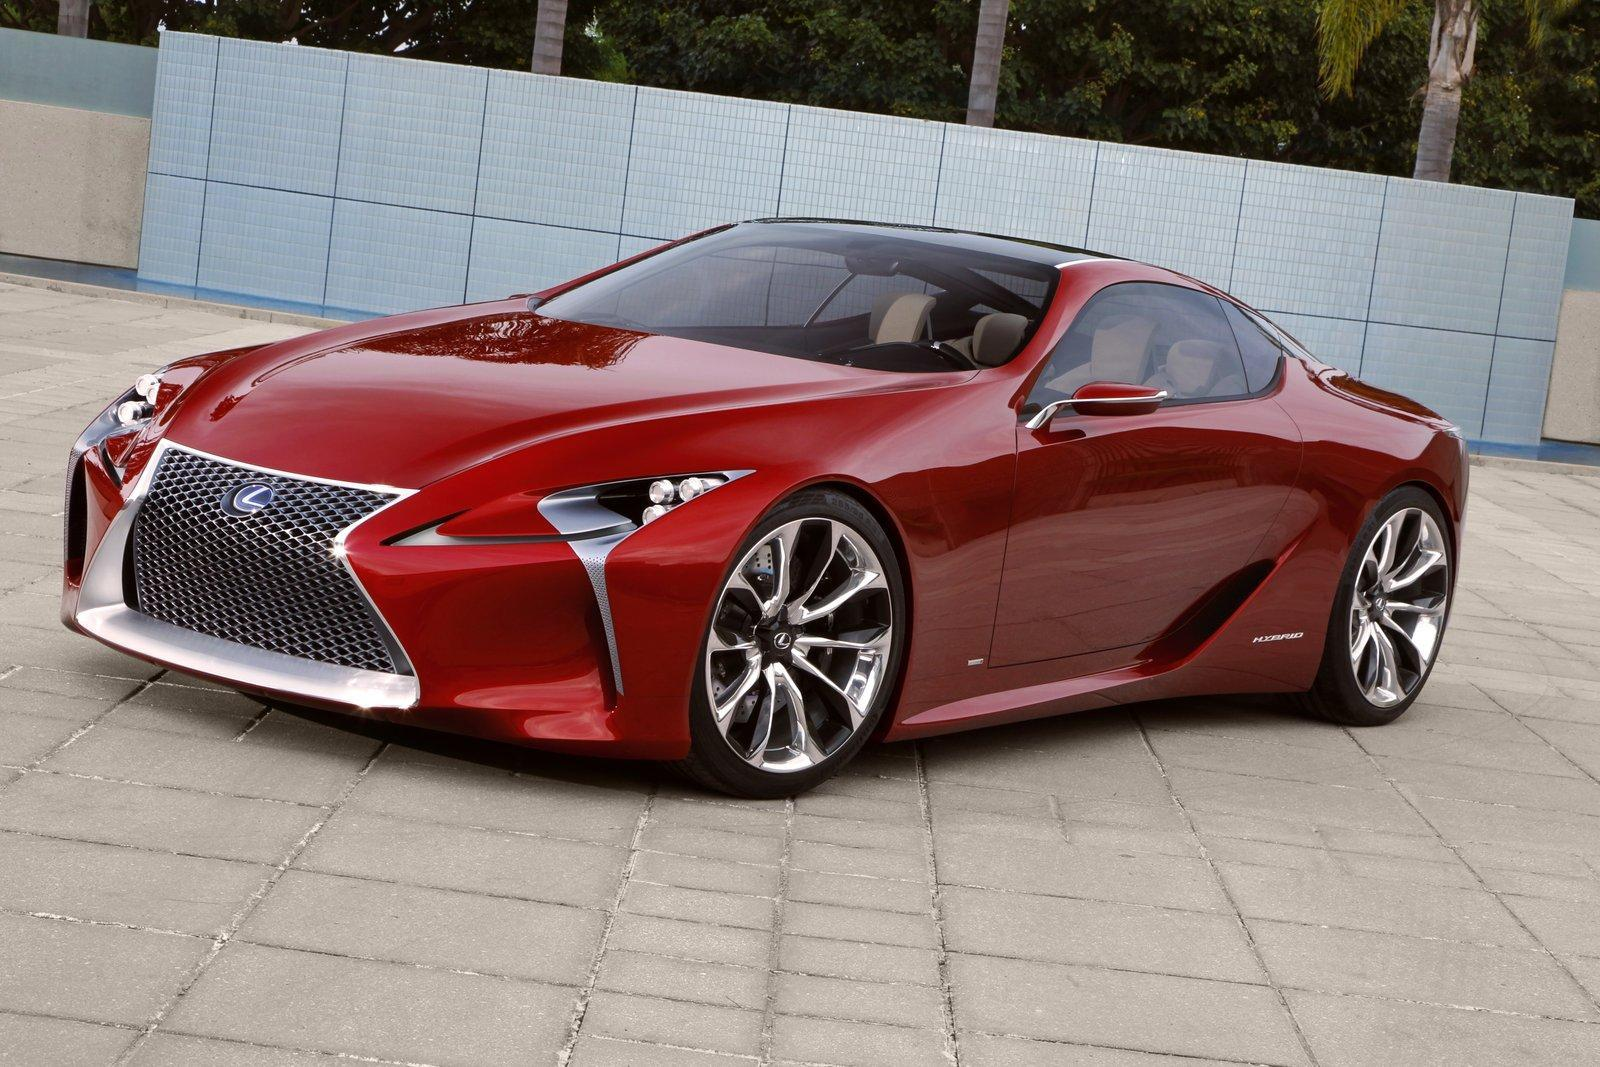 Pictures of new lexus cars By Dknqgg